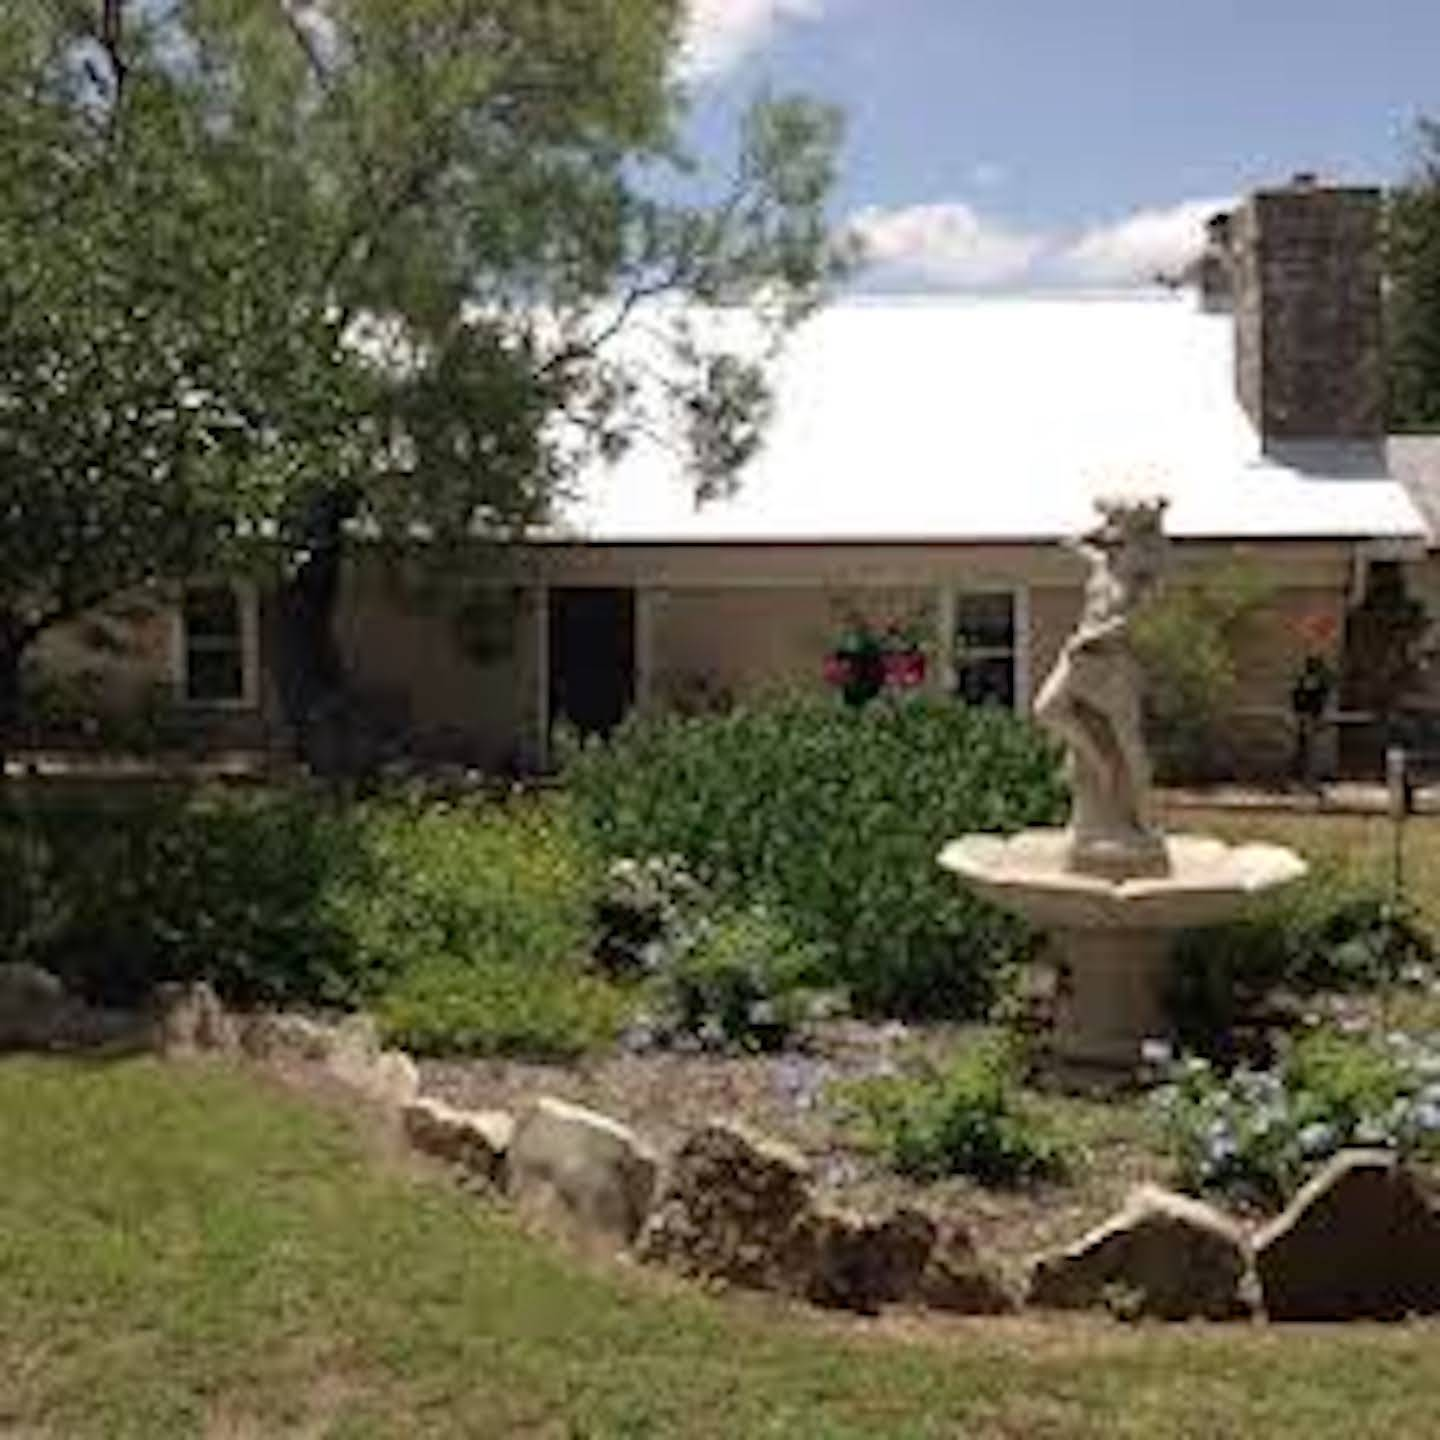 A garden in front of a building at Erbstuck Ranch.